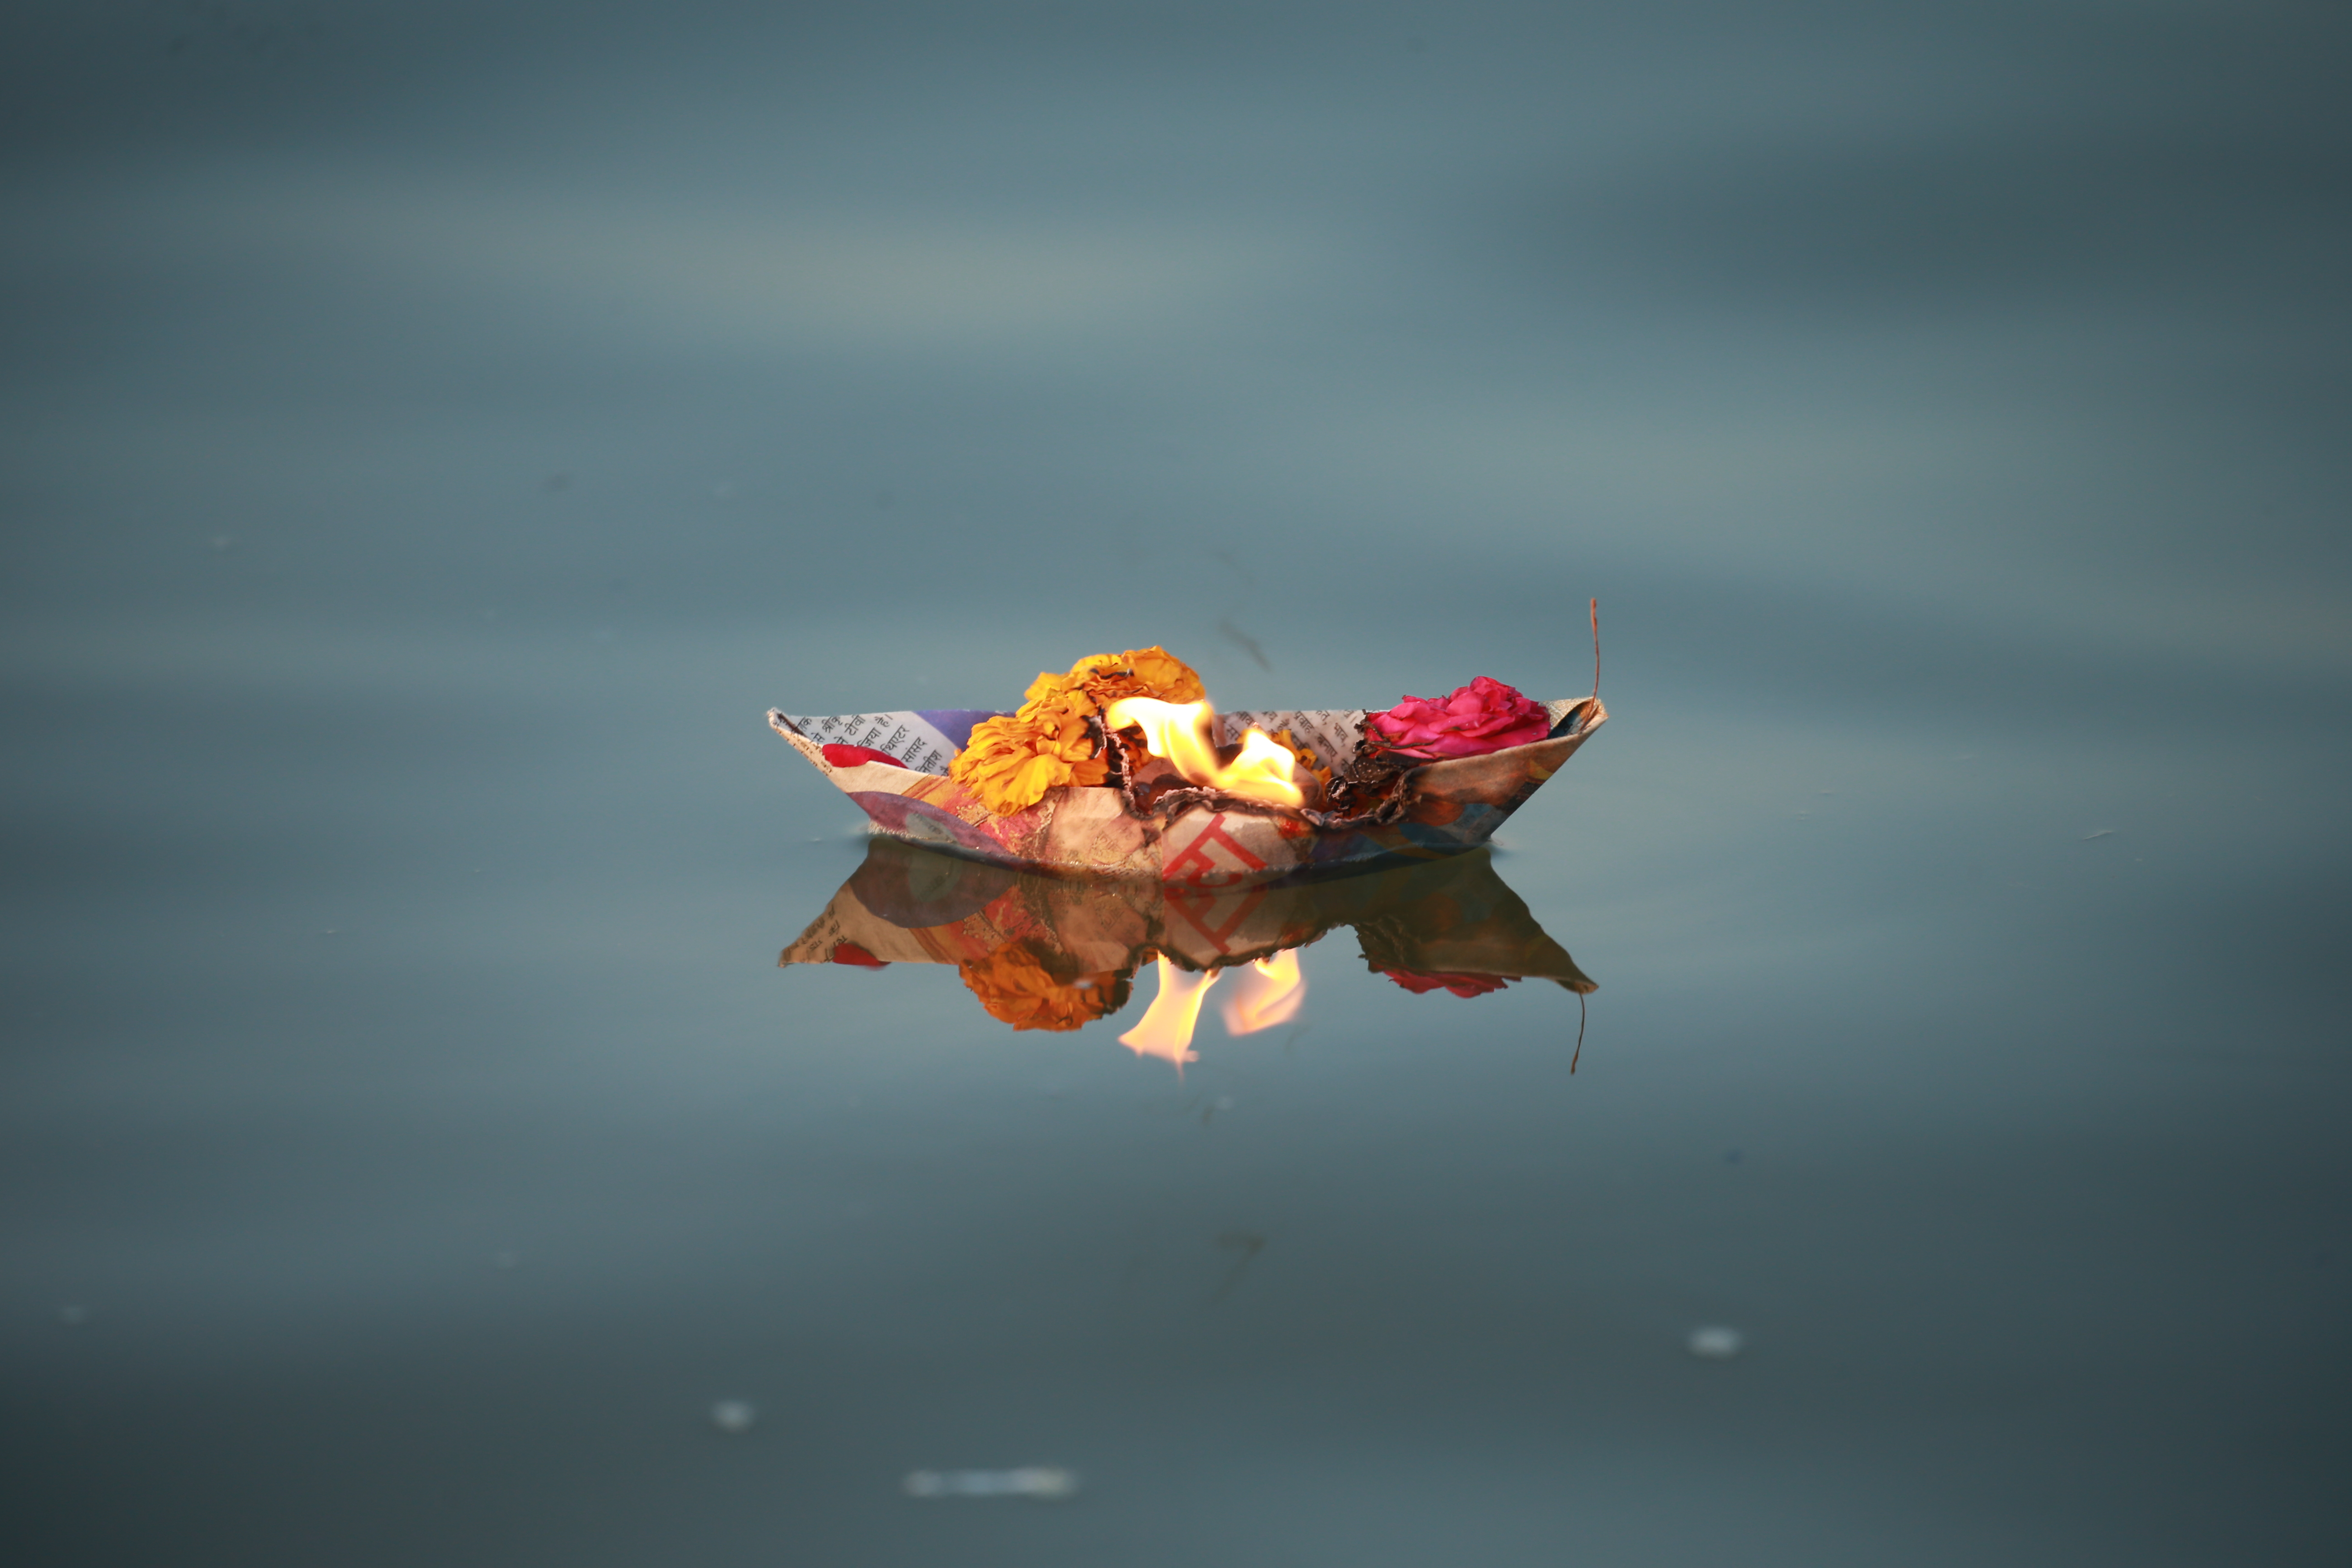 Offerings by Devotees in The River Ganga